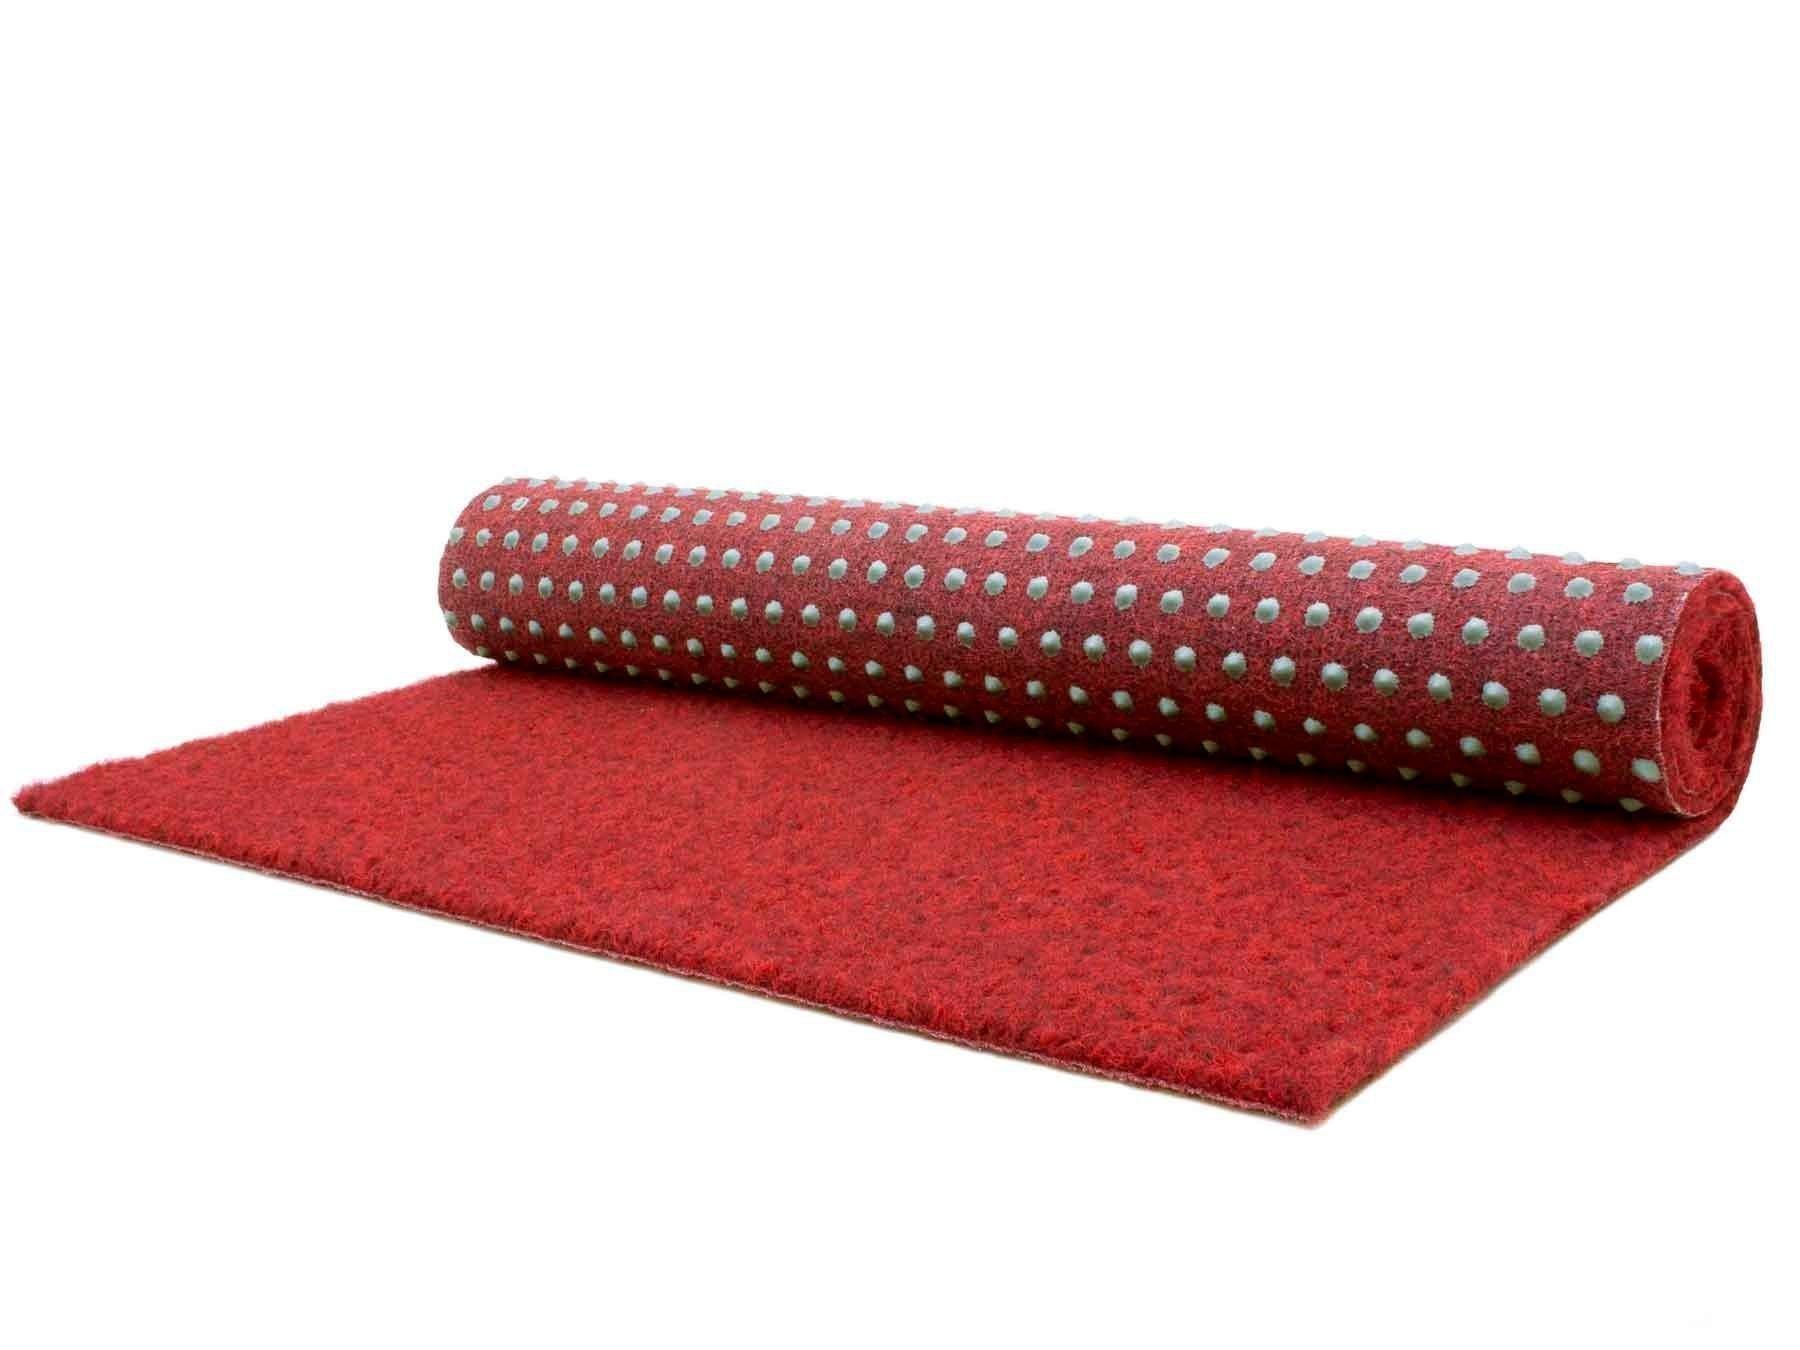 Primaflor Ideen In Textil Teppich Green 400x950 Cm Rot In 2020 Green Outdoor Rug Buying Carpet Outdoor Carpet